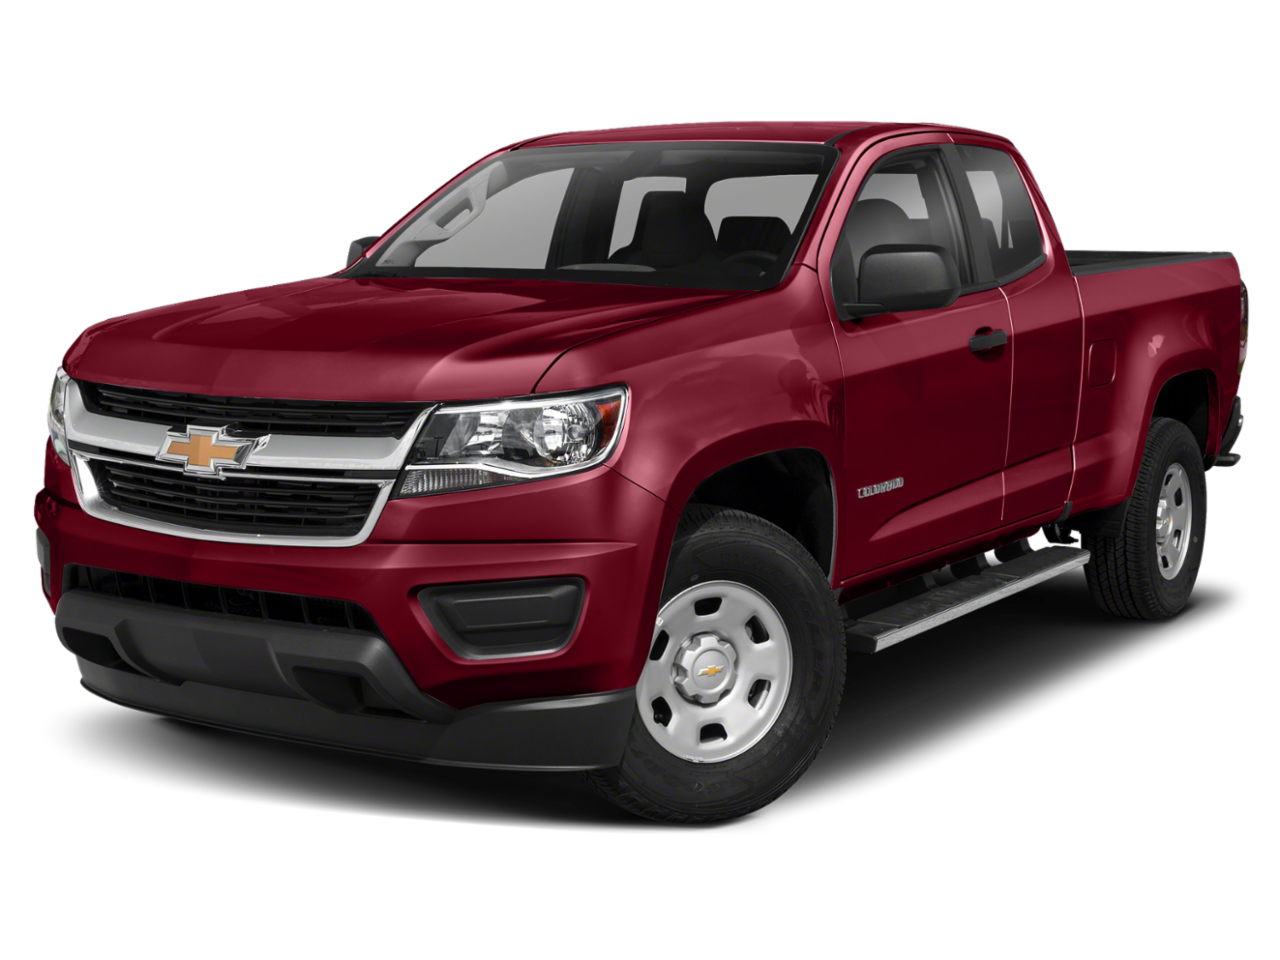 "2020 Chevrolet<br/><span class=""vdp-trim"">Colorado 4WD LT 4WD Crew Cab Pickup</span>"